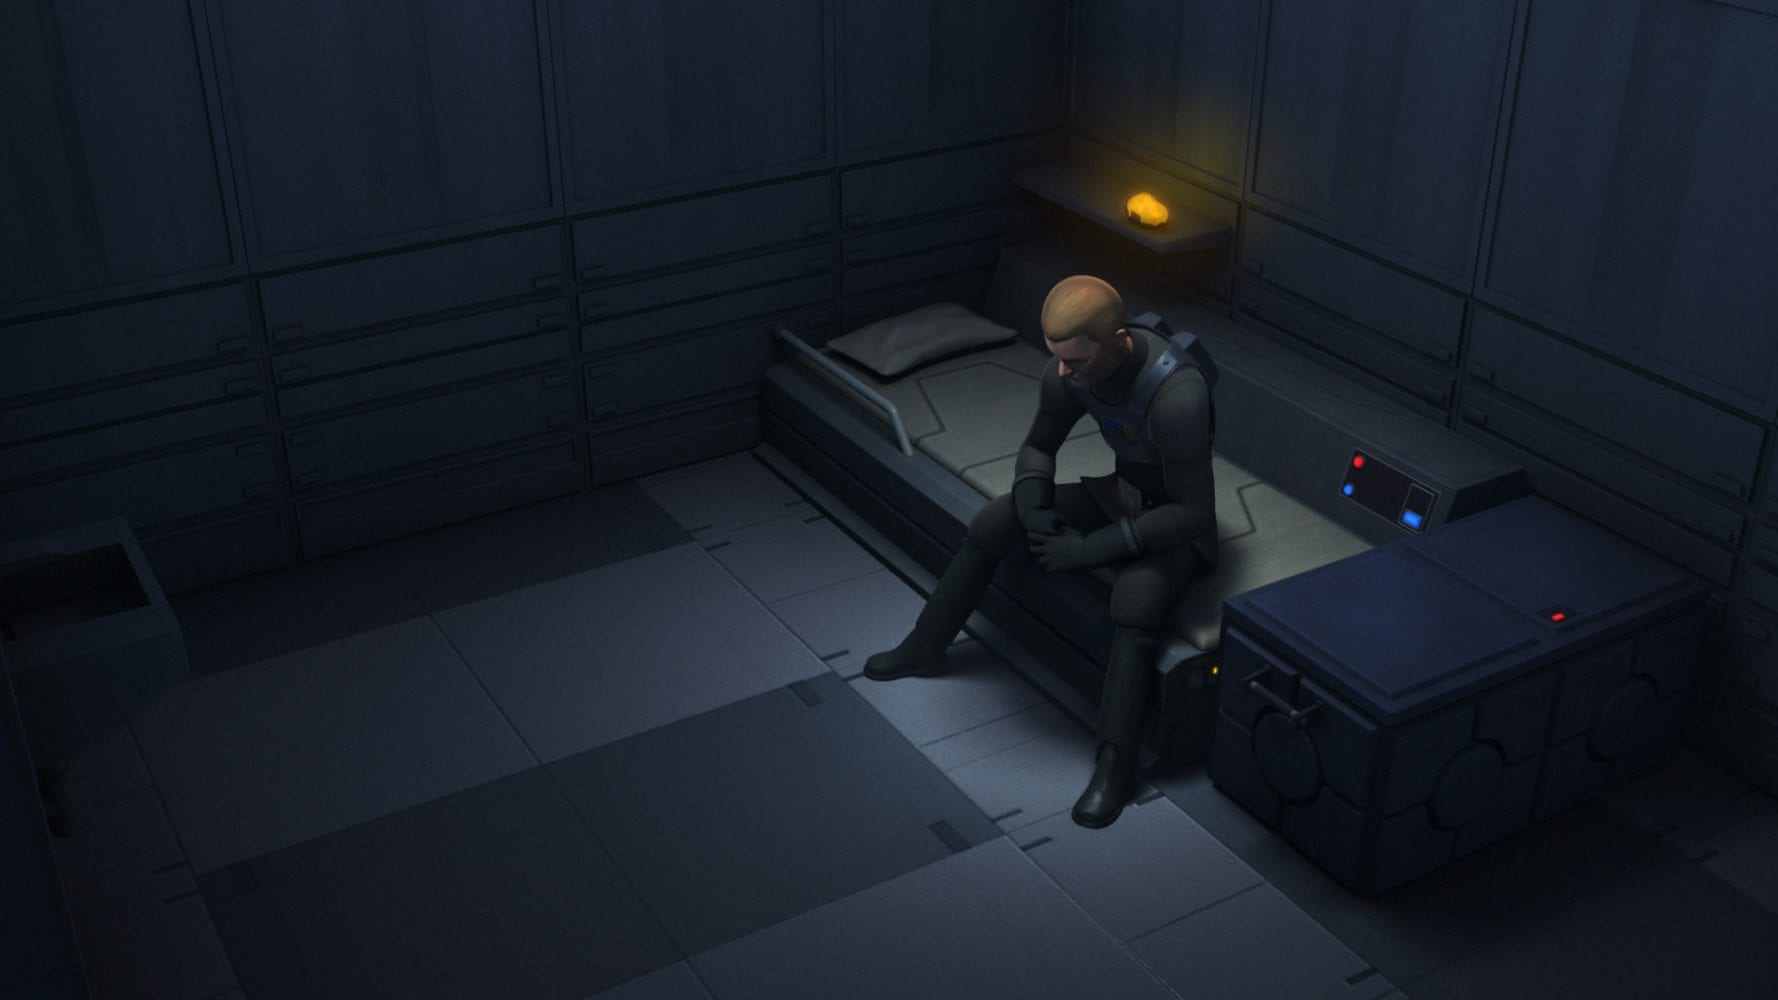 the honorable ones, Star Wars Rebels, Agent Kallus